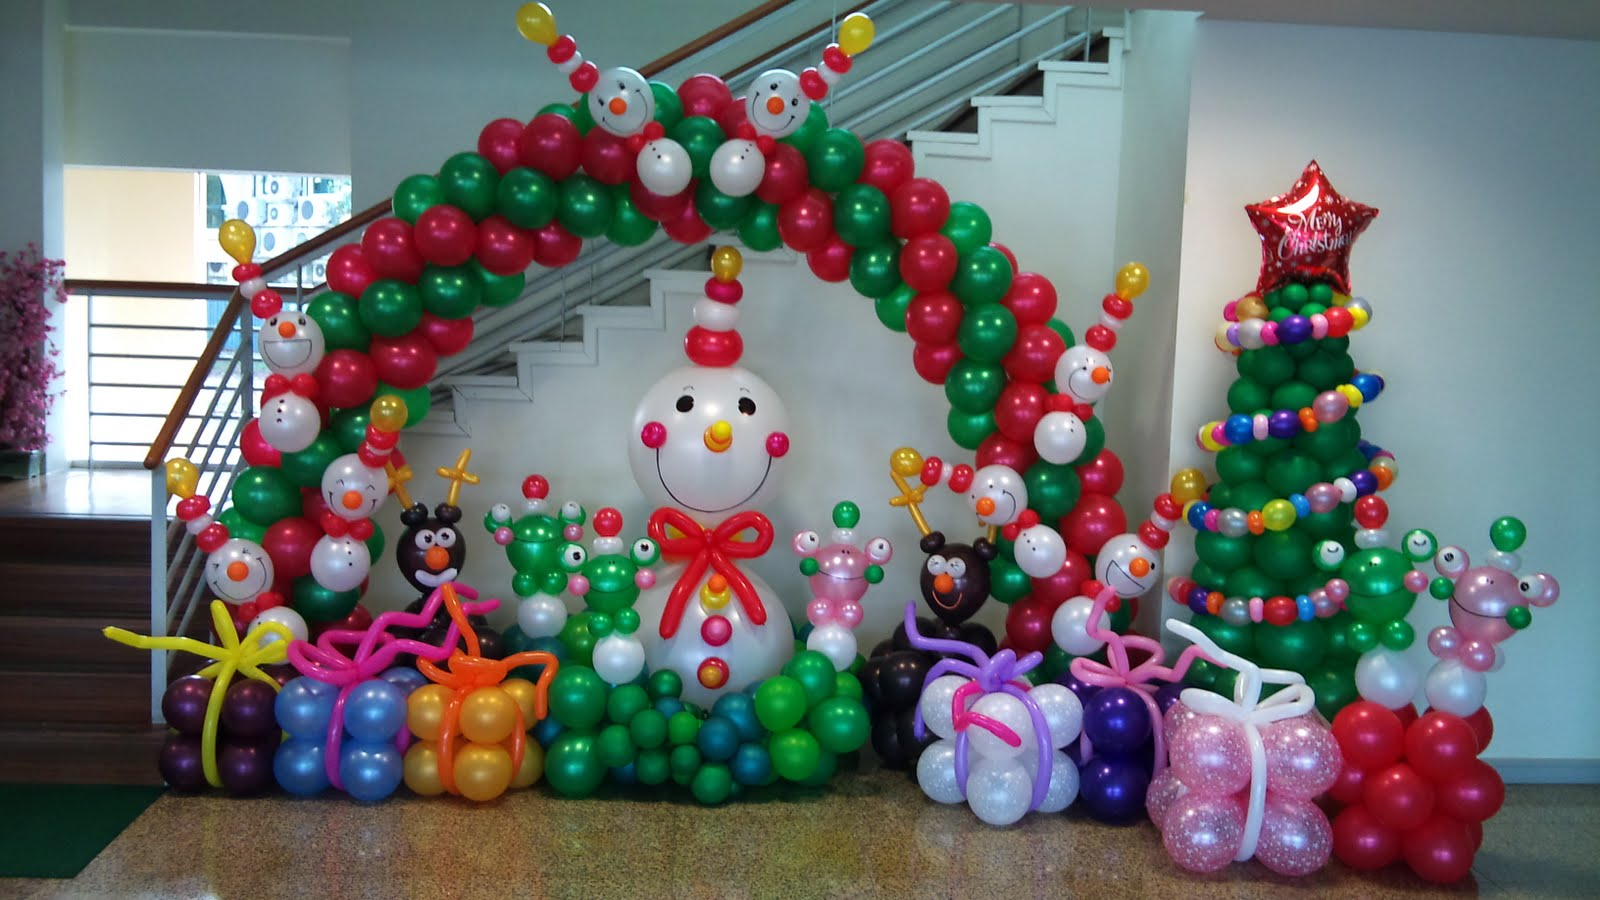 Remarkable Christmas Balloon Decorations 1600 x 900 · 177 kB · jpeg